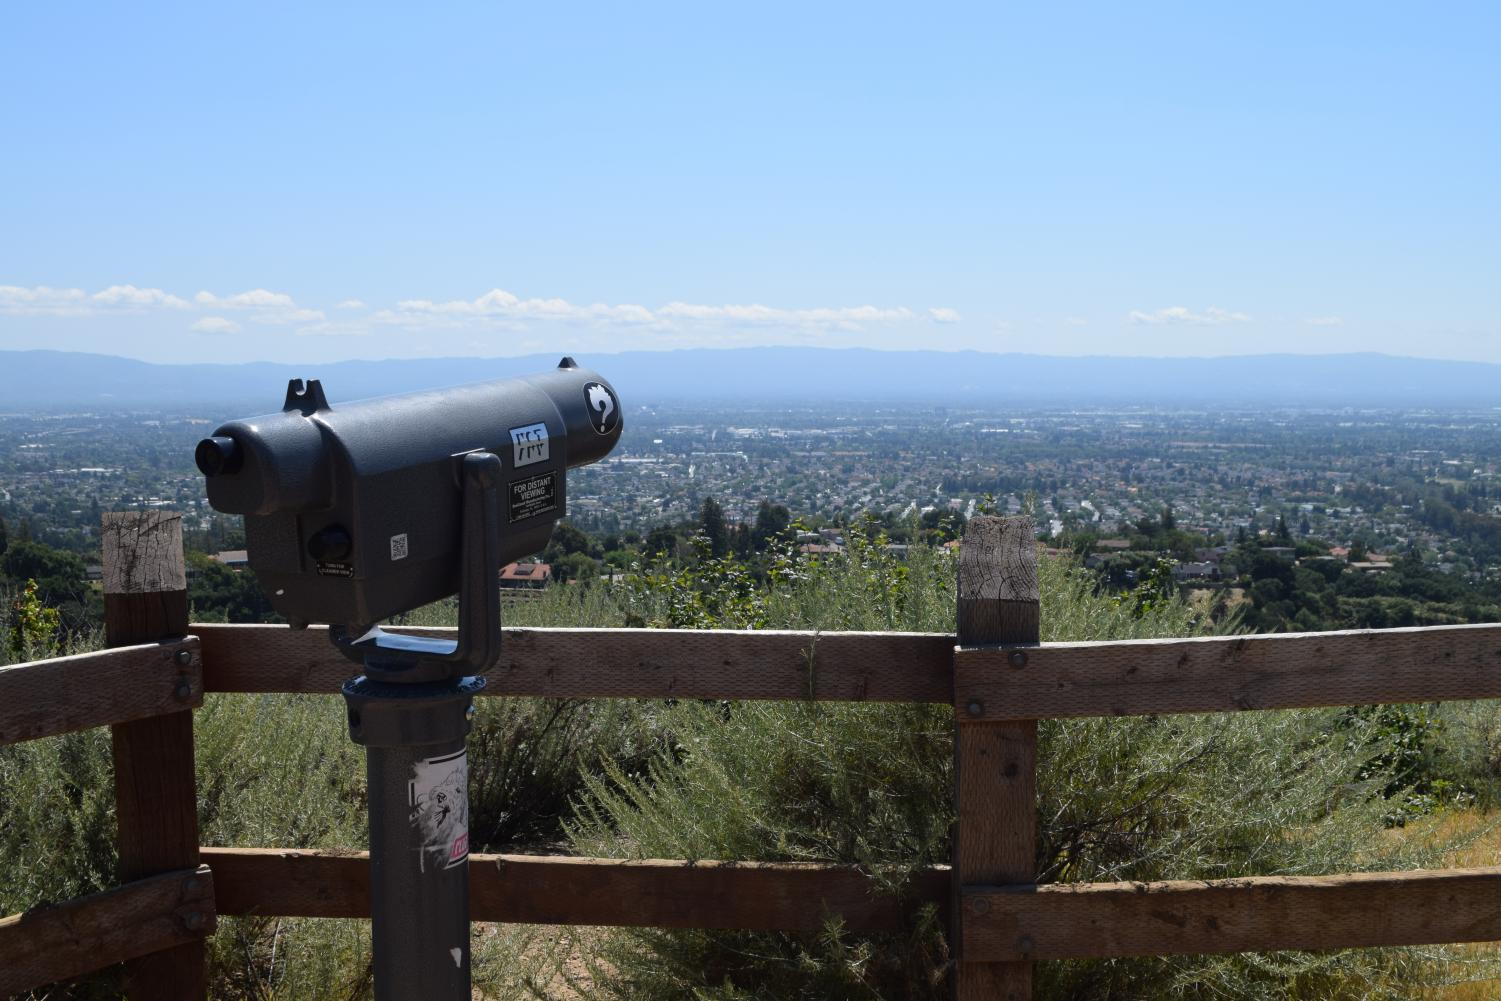 Viewing+scope+allows+one+to+get+a+closer+look+at+the+distant+parts+of+the+city.